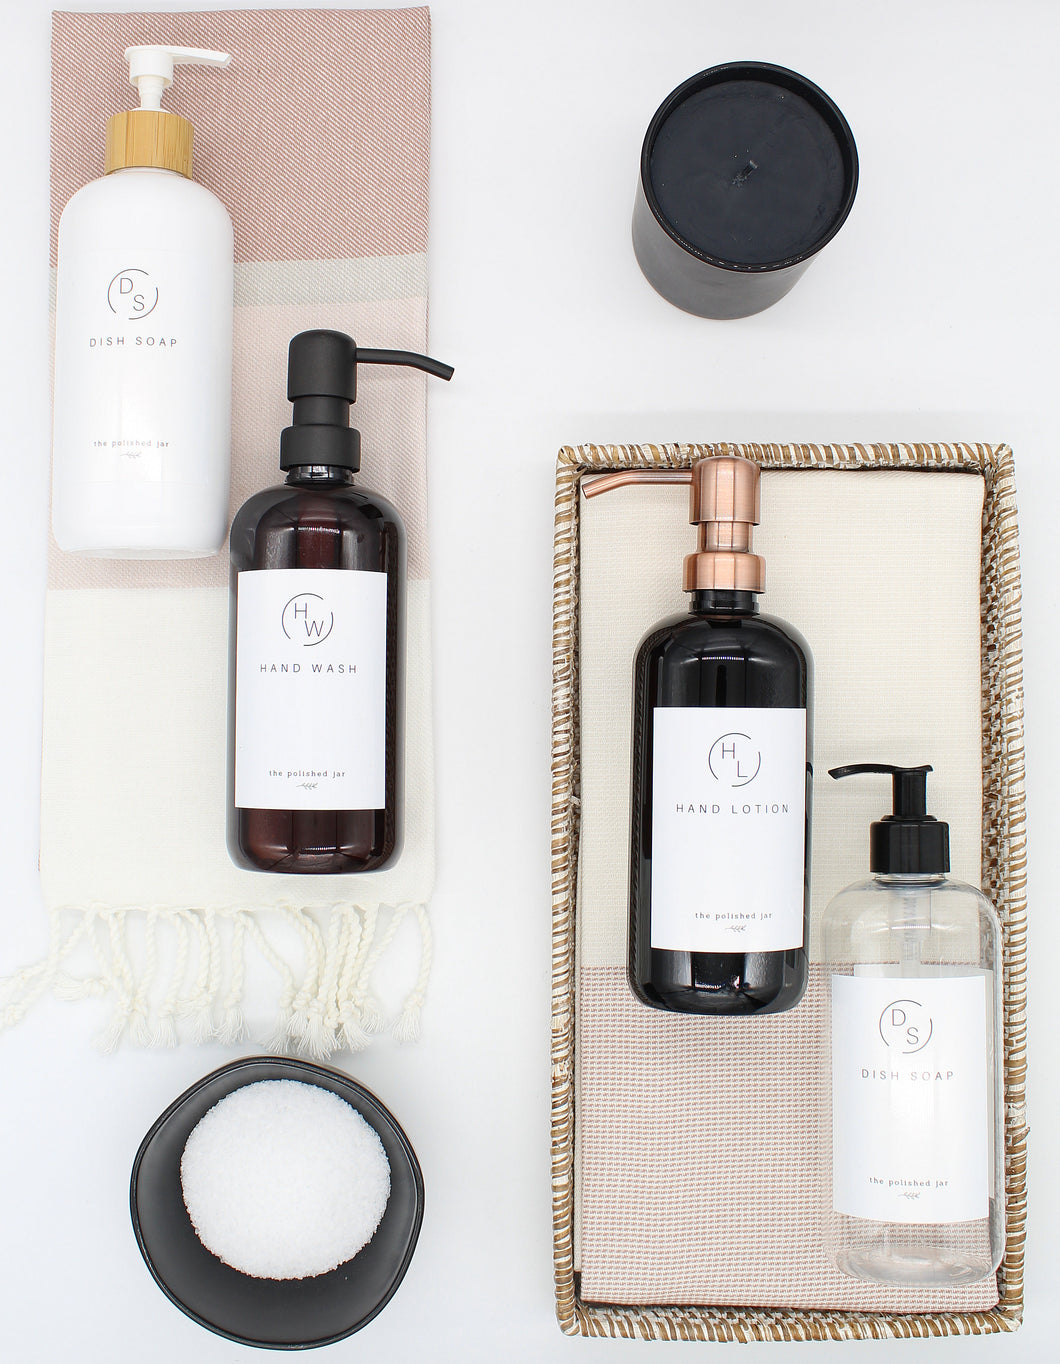 Plastic | Hand Wash, Dish Soap, Hand Lotion | Minimalist Collection